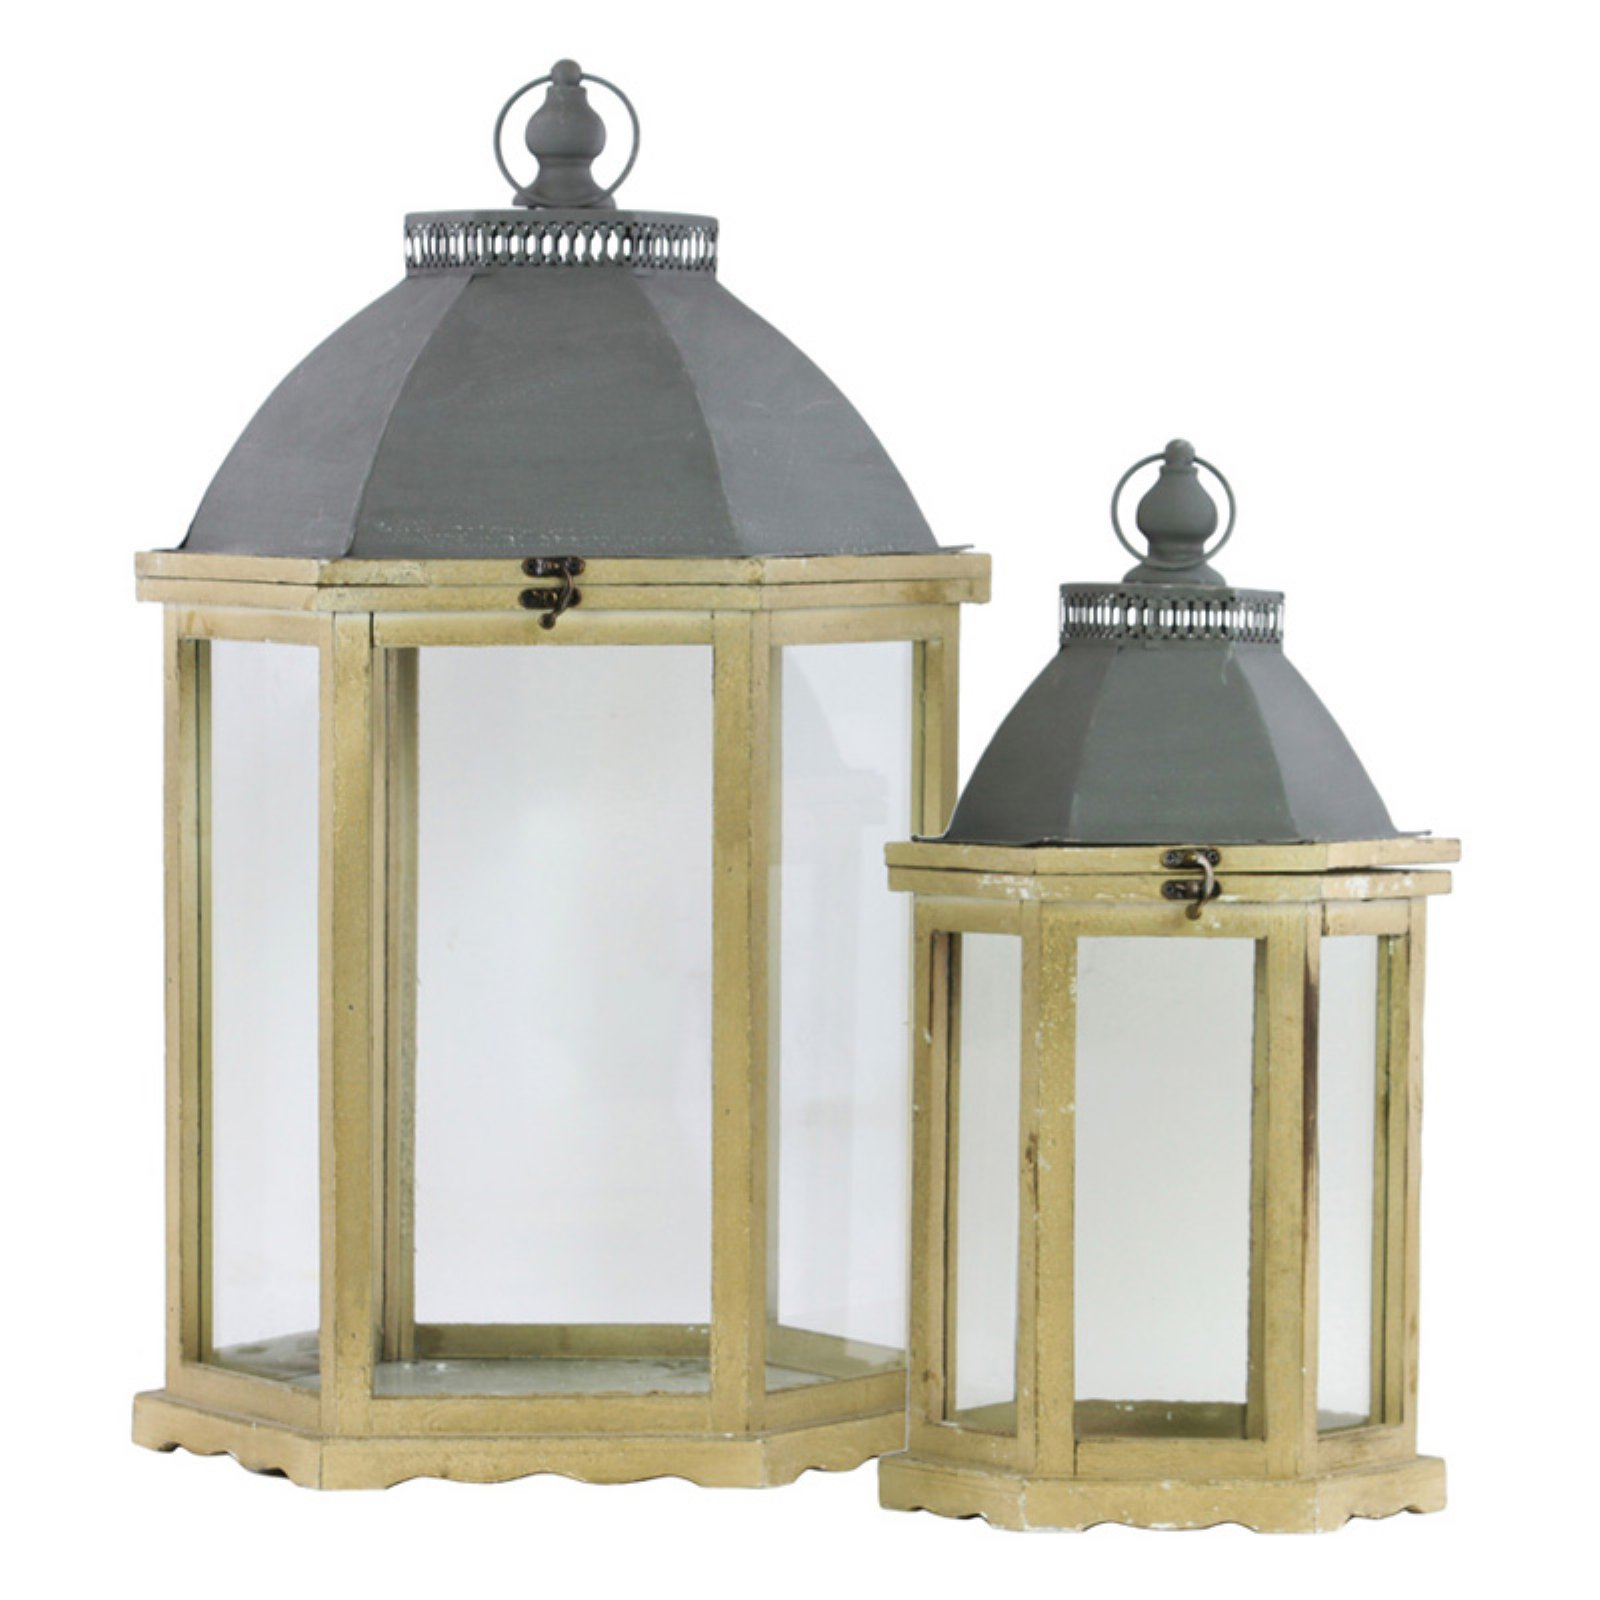 Urban Trends Collection: Wood Hand Lantern, Distressed Finish, Brown, Brown